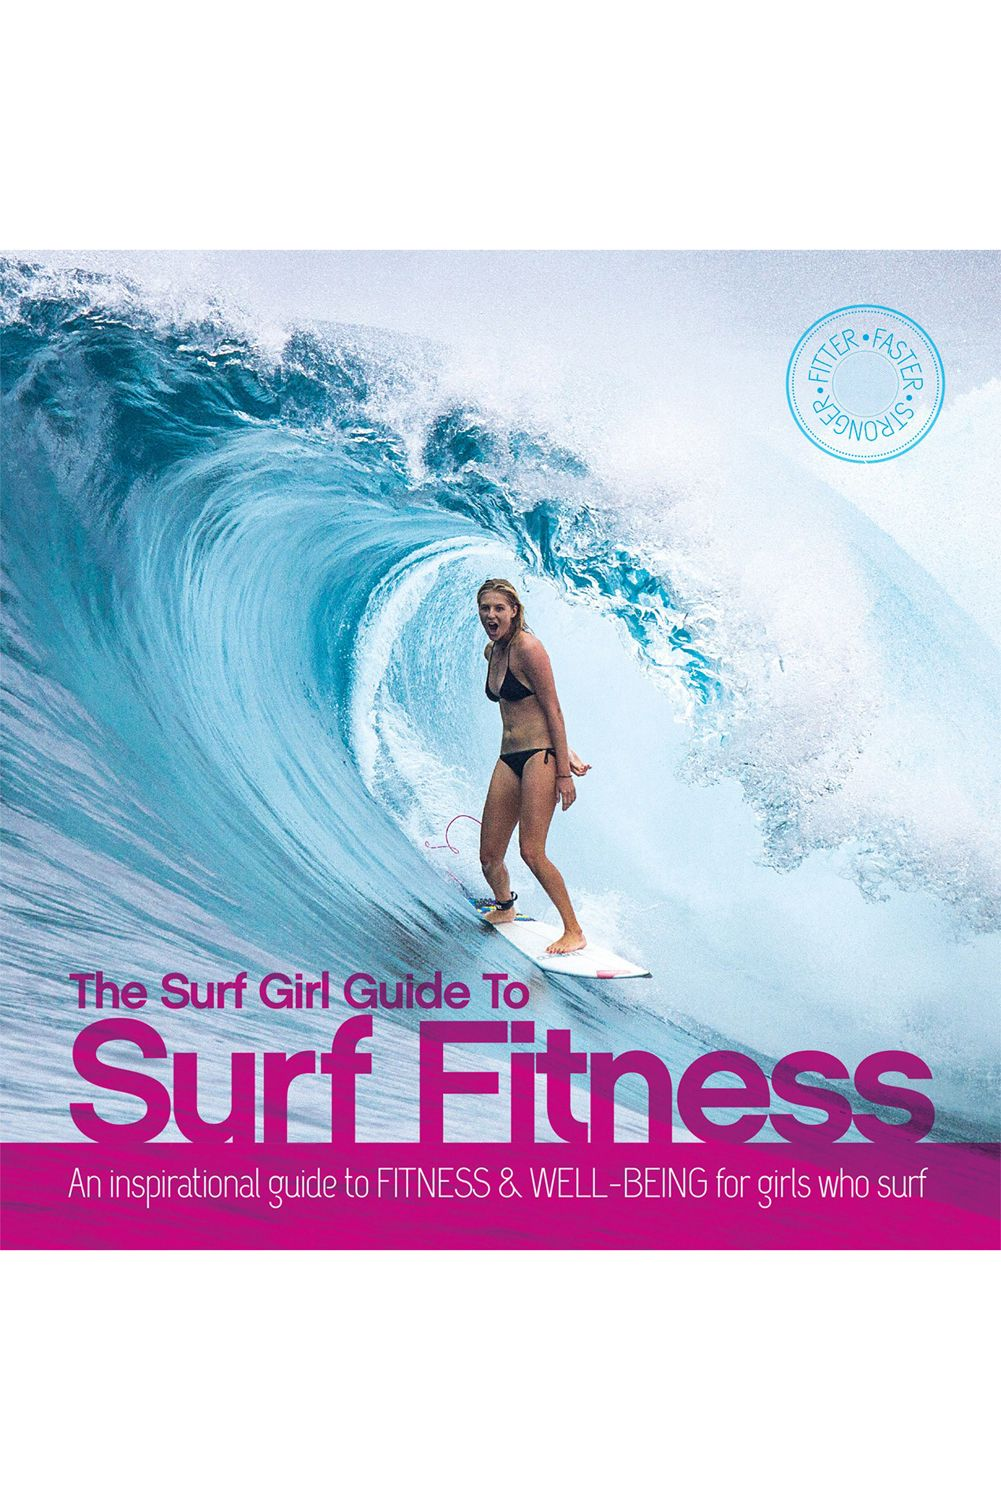 Livro VR THE SURF GIRL GUIDE TO SURF FITNESS Assorted